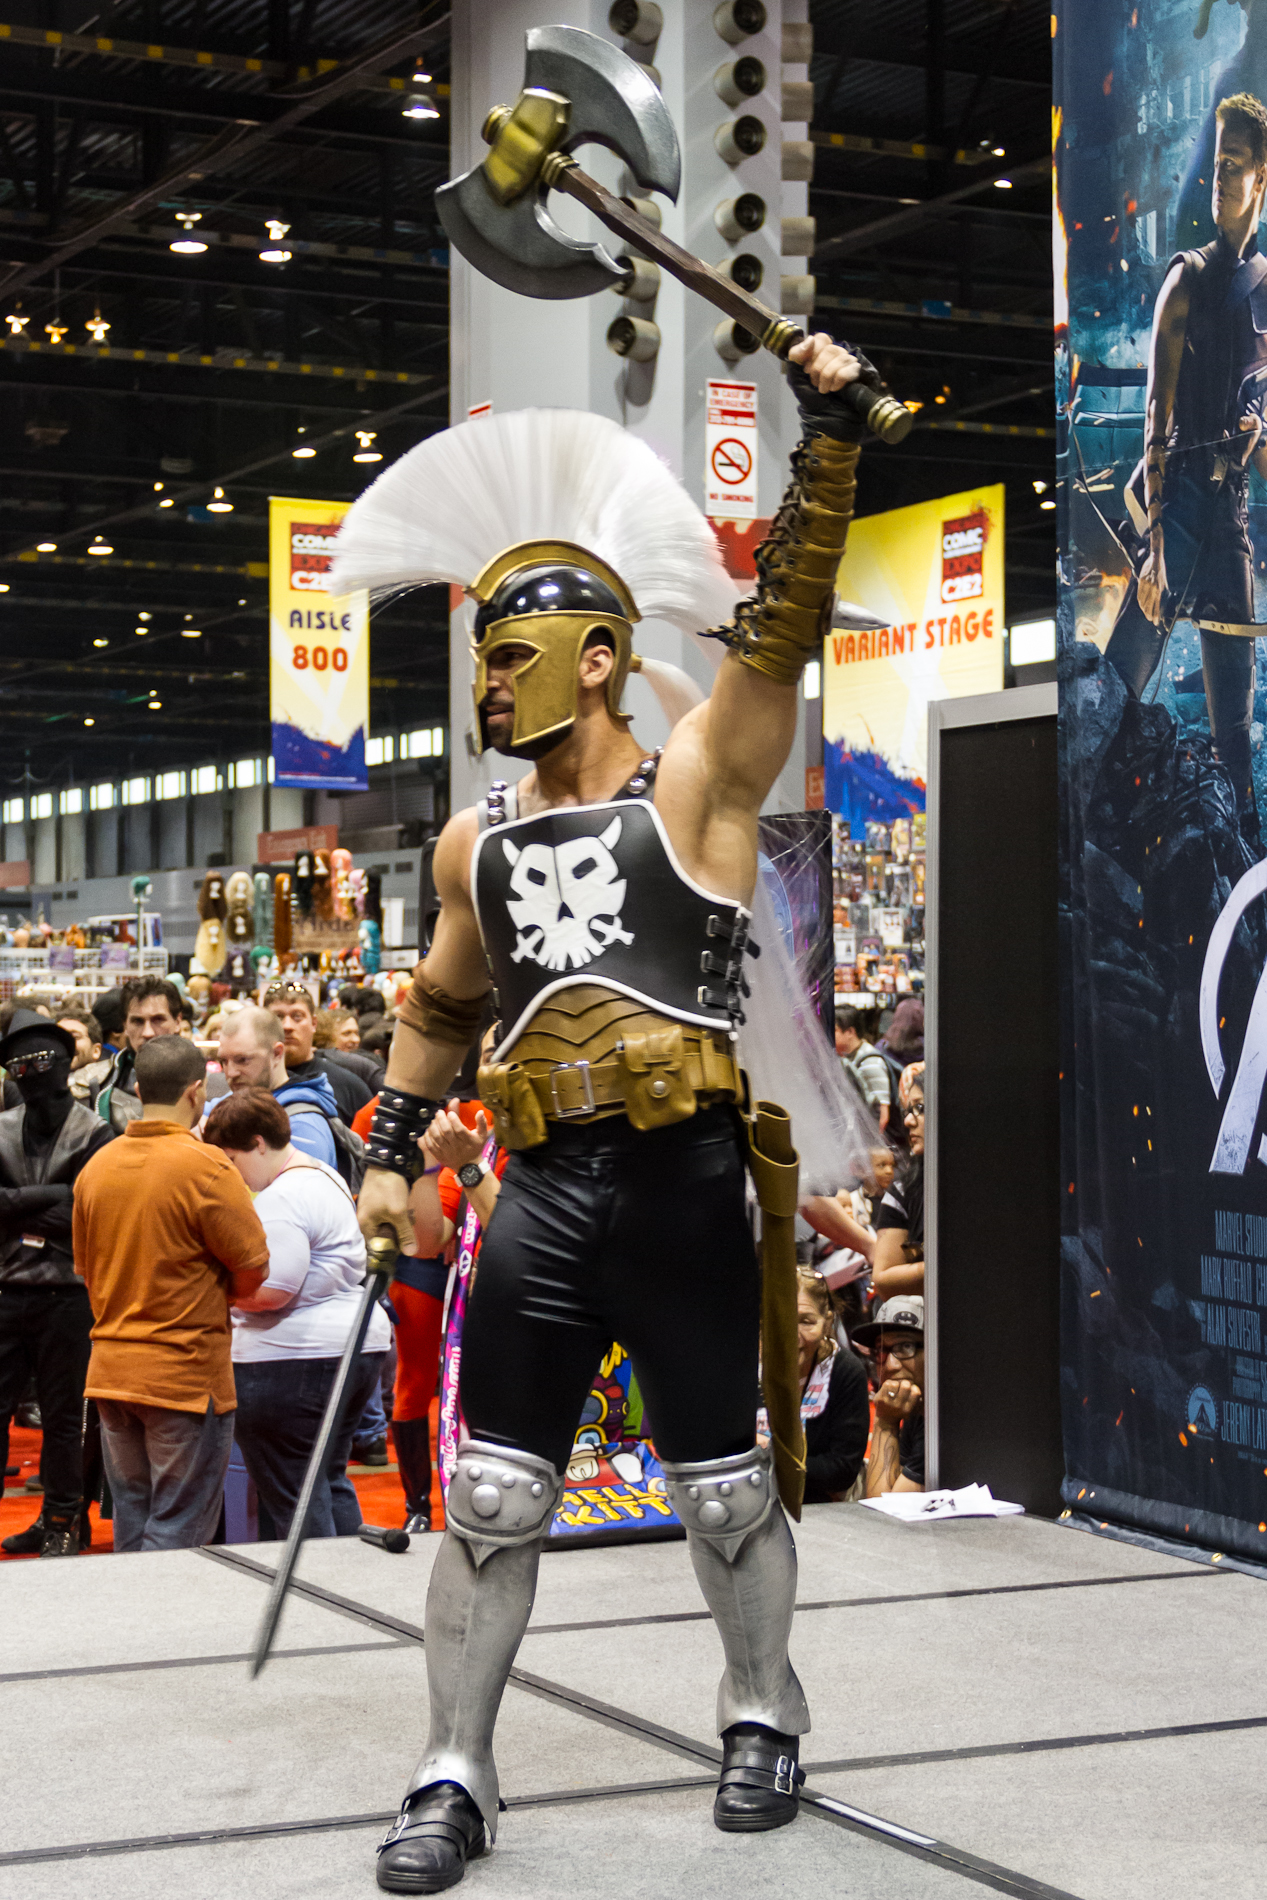 File:Ares Cosplayer.jpg - Wikimedia Commons